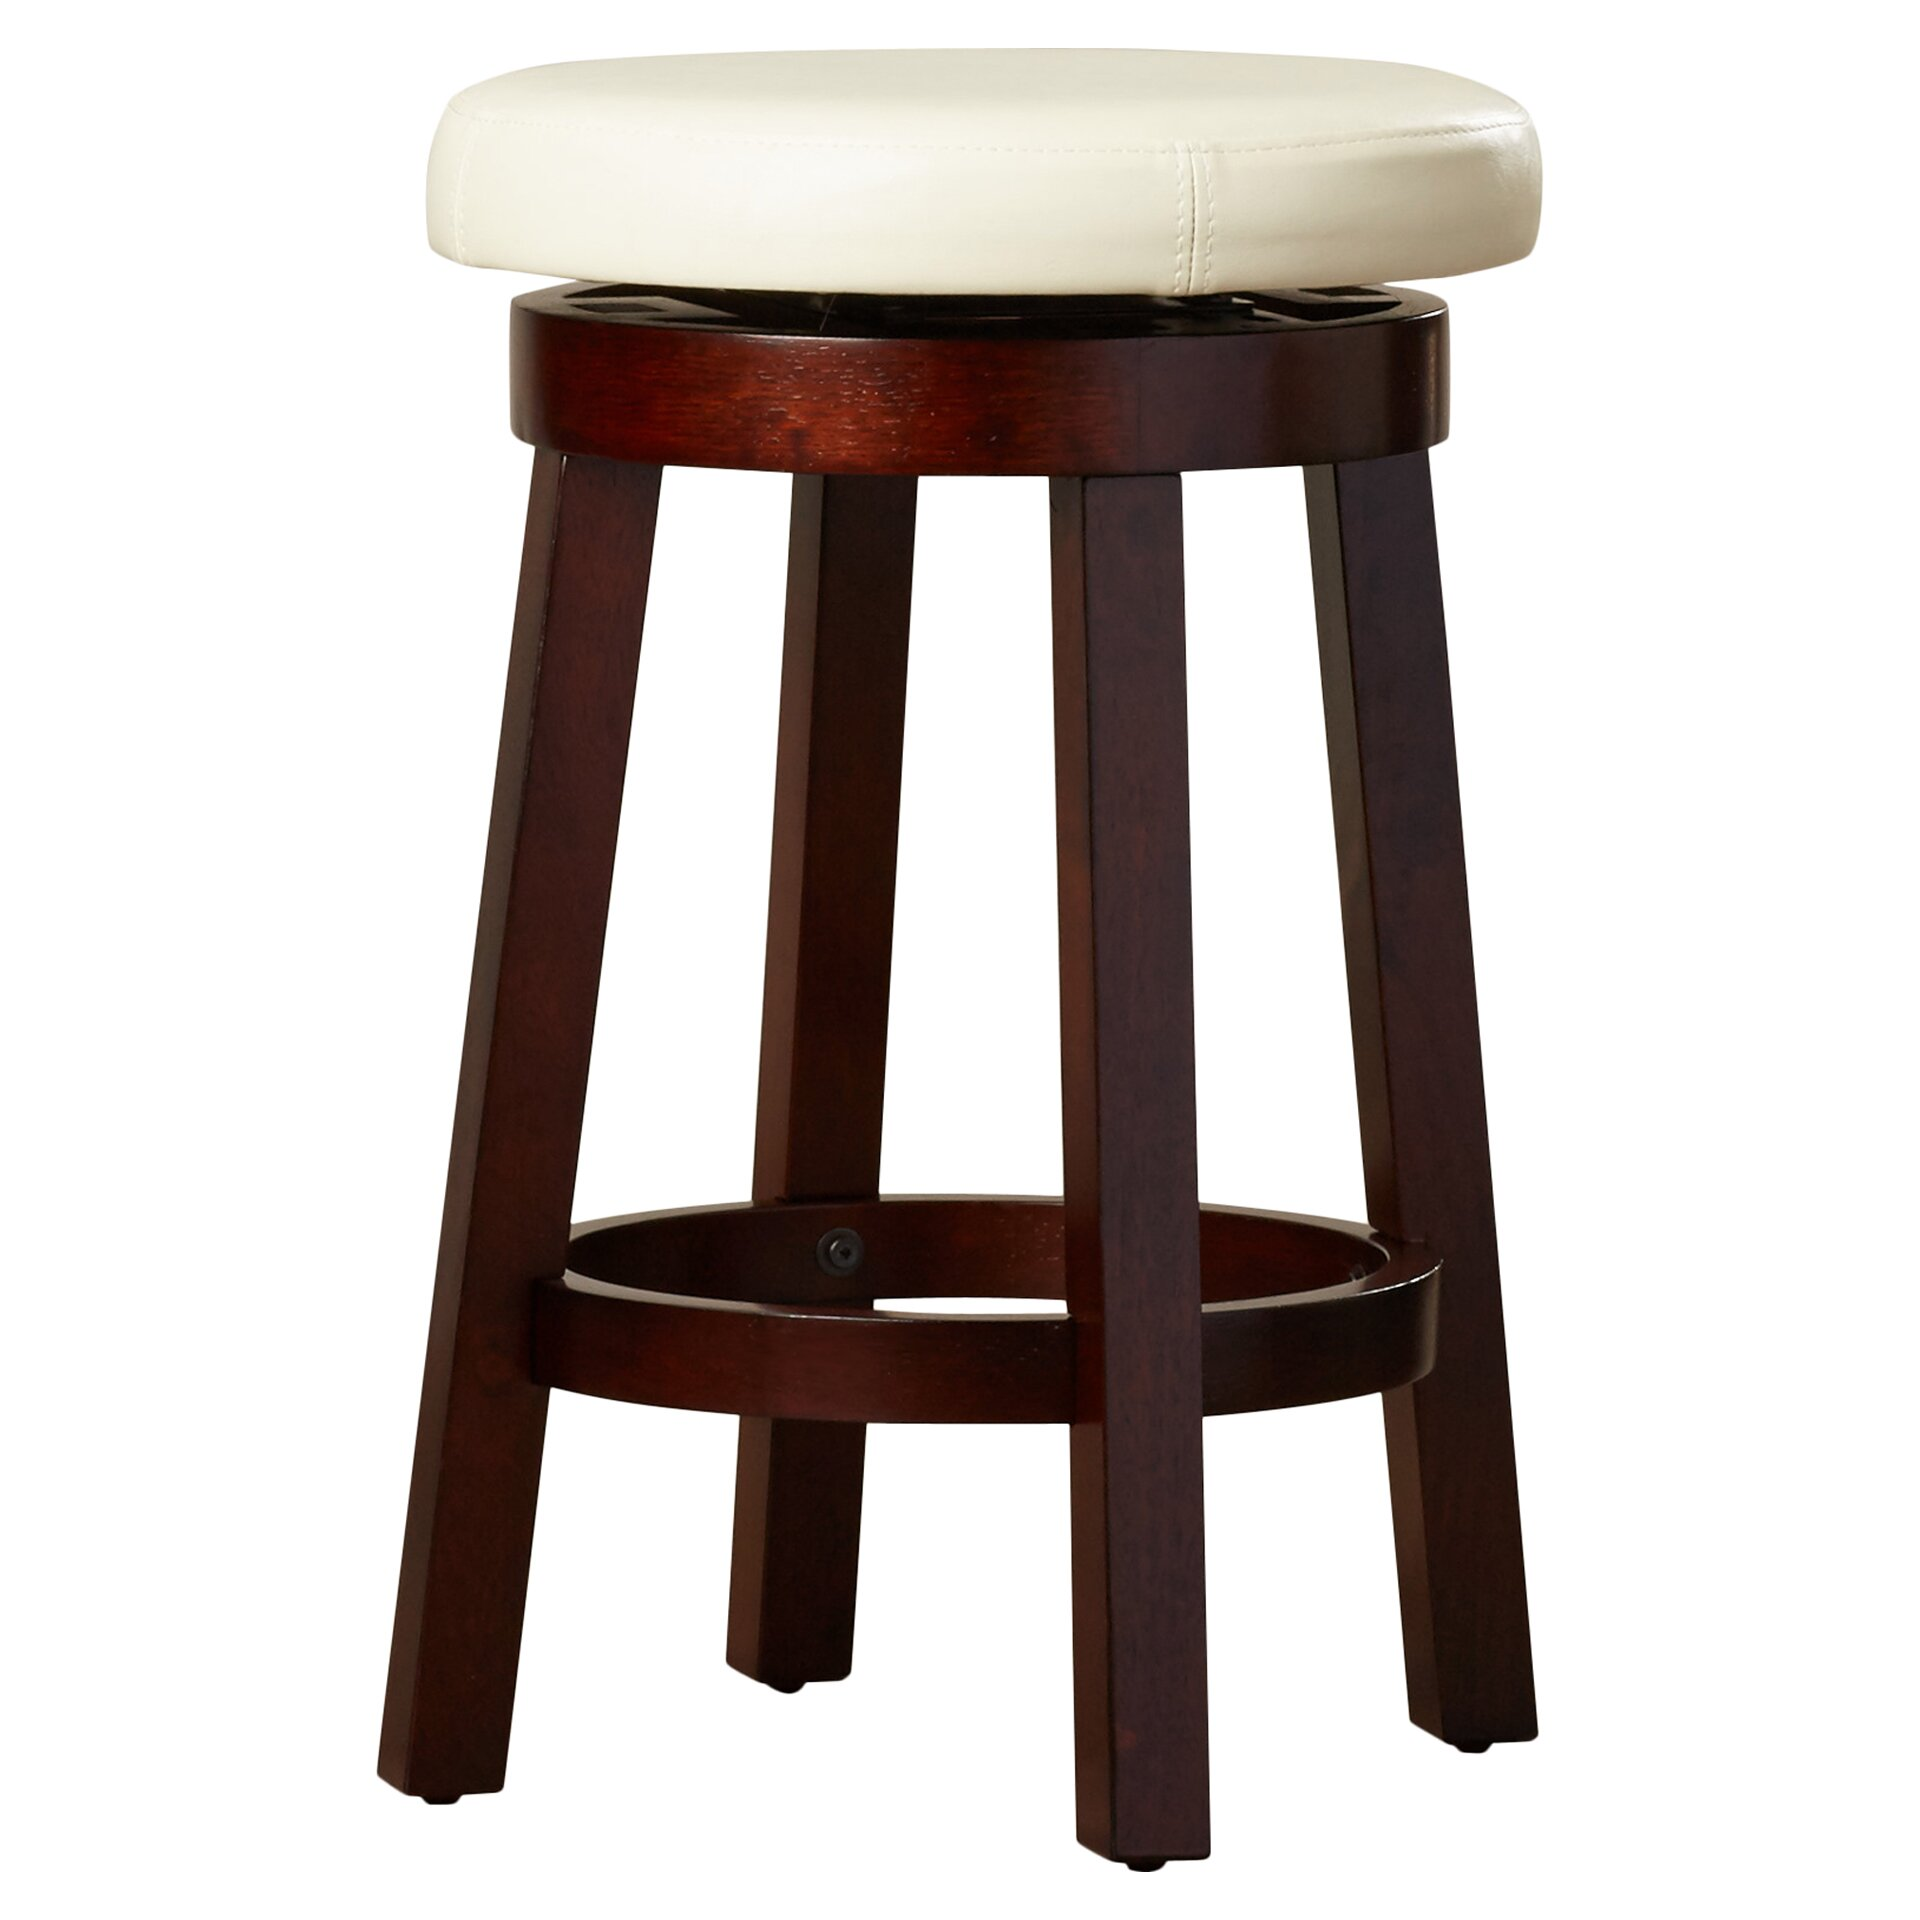 OSP Designs Metro 24quot Bar Stool with Cushion amp Reviews  : Antley2B2425222BBar2BStool2Bwith2BCushion from www.wayfair.com size 1920 x 1920 jpeg 229kB